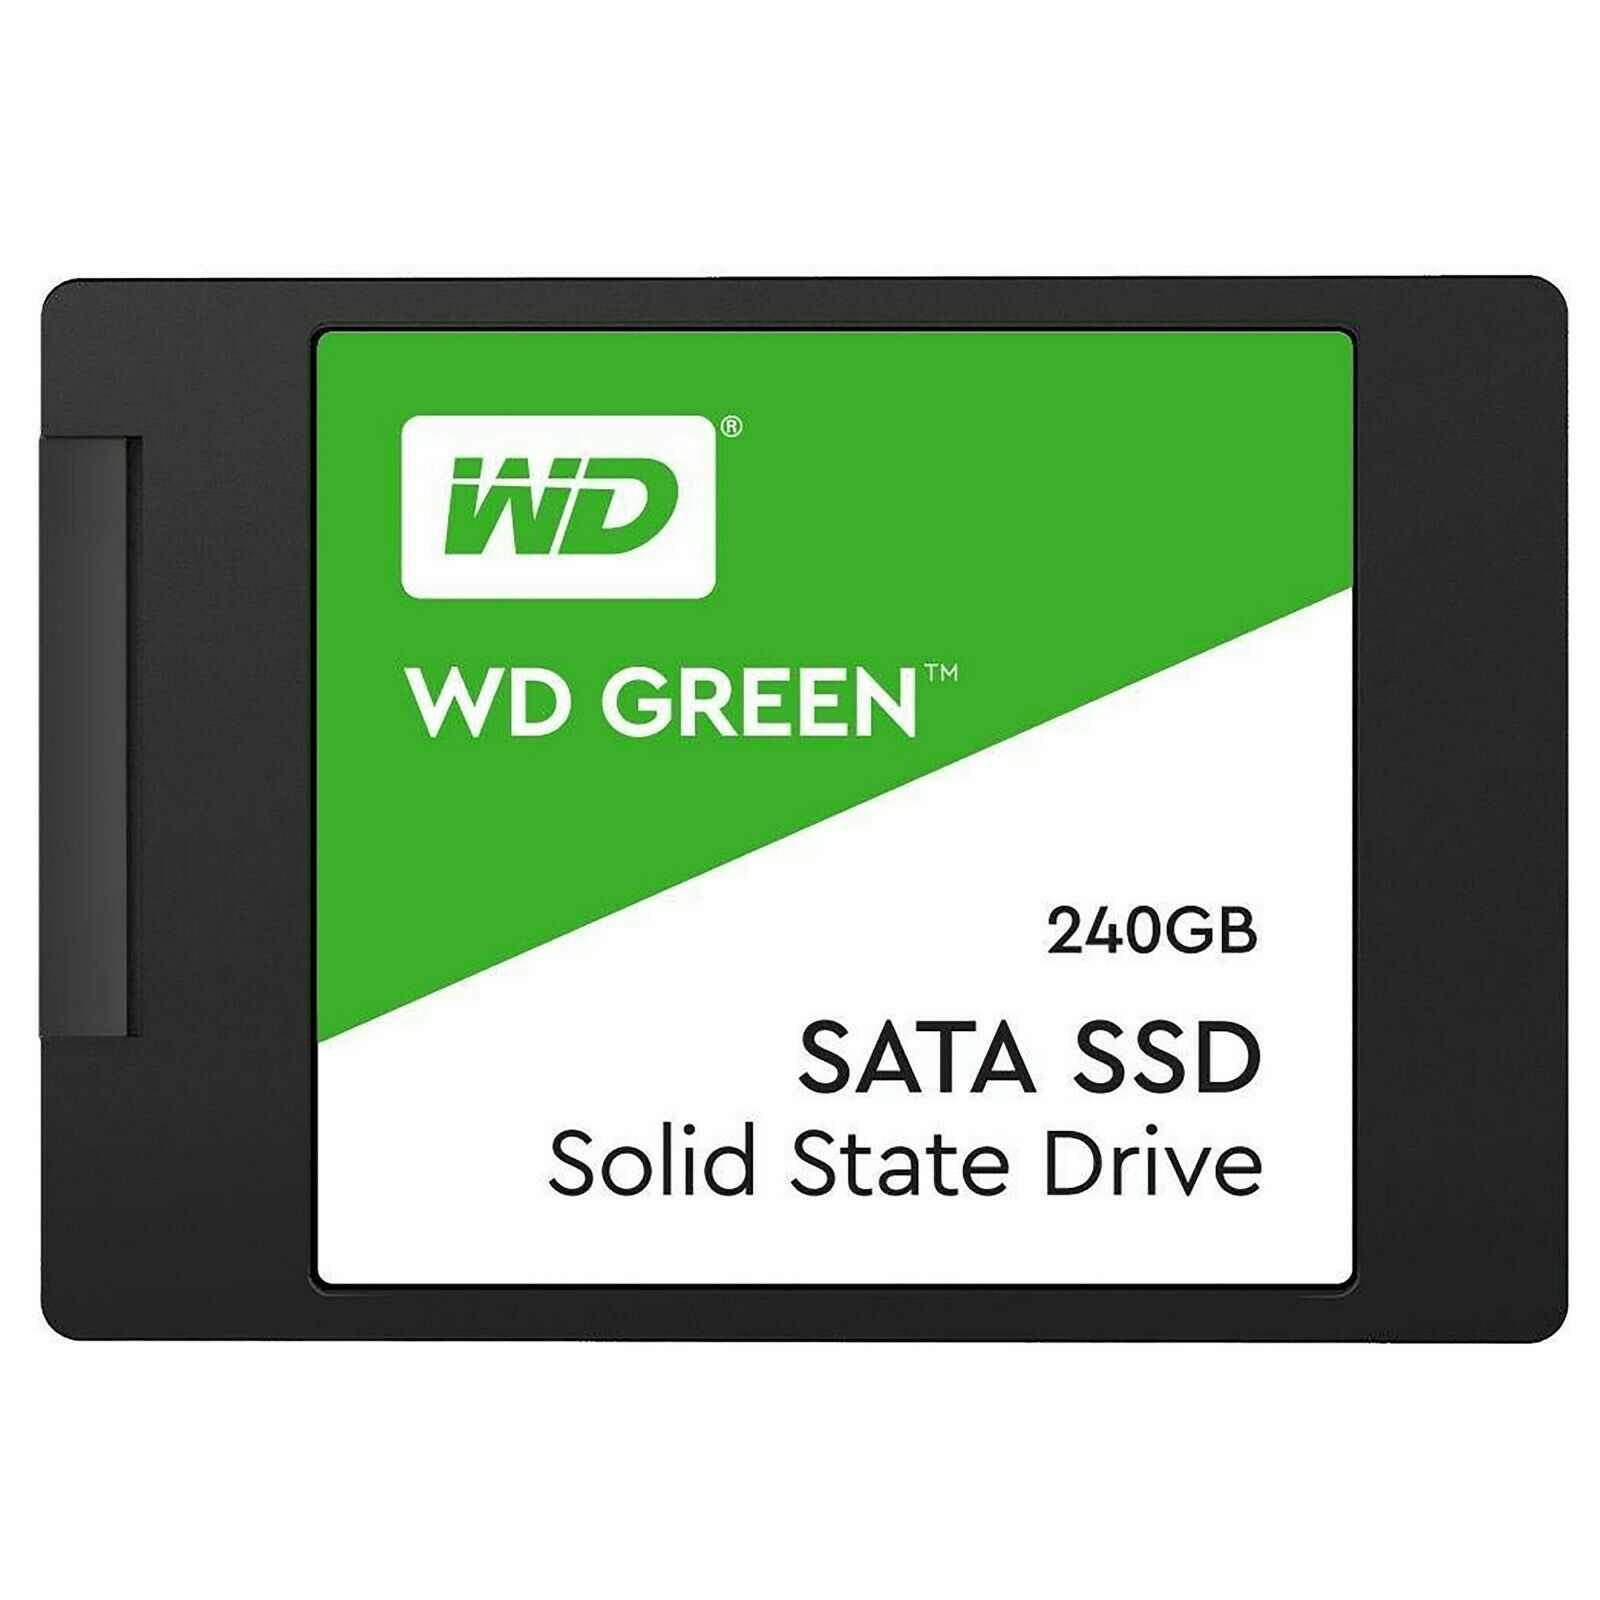 Western Digital SSD 240GB SATA III 3D NAND Internal Solid St